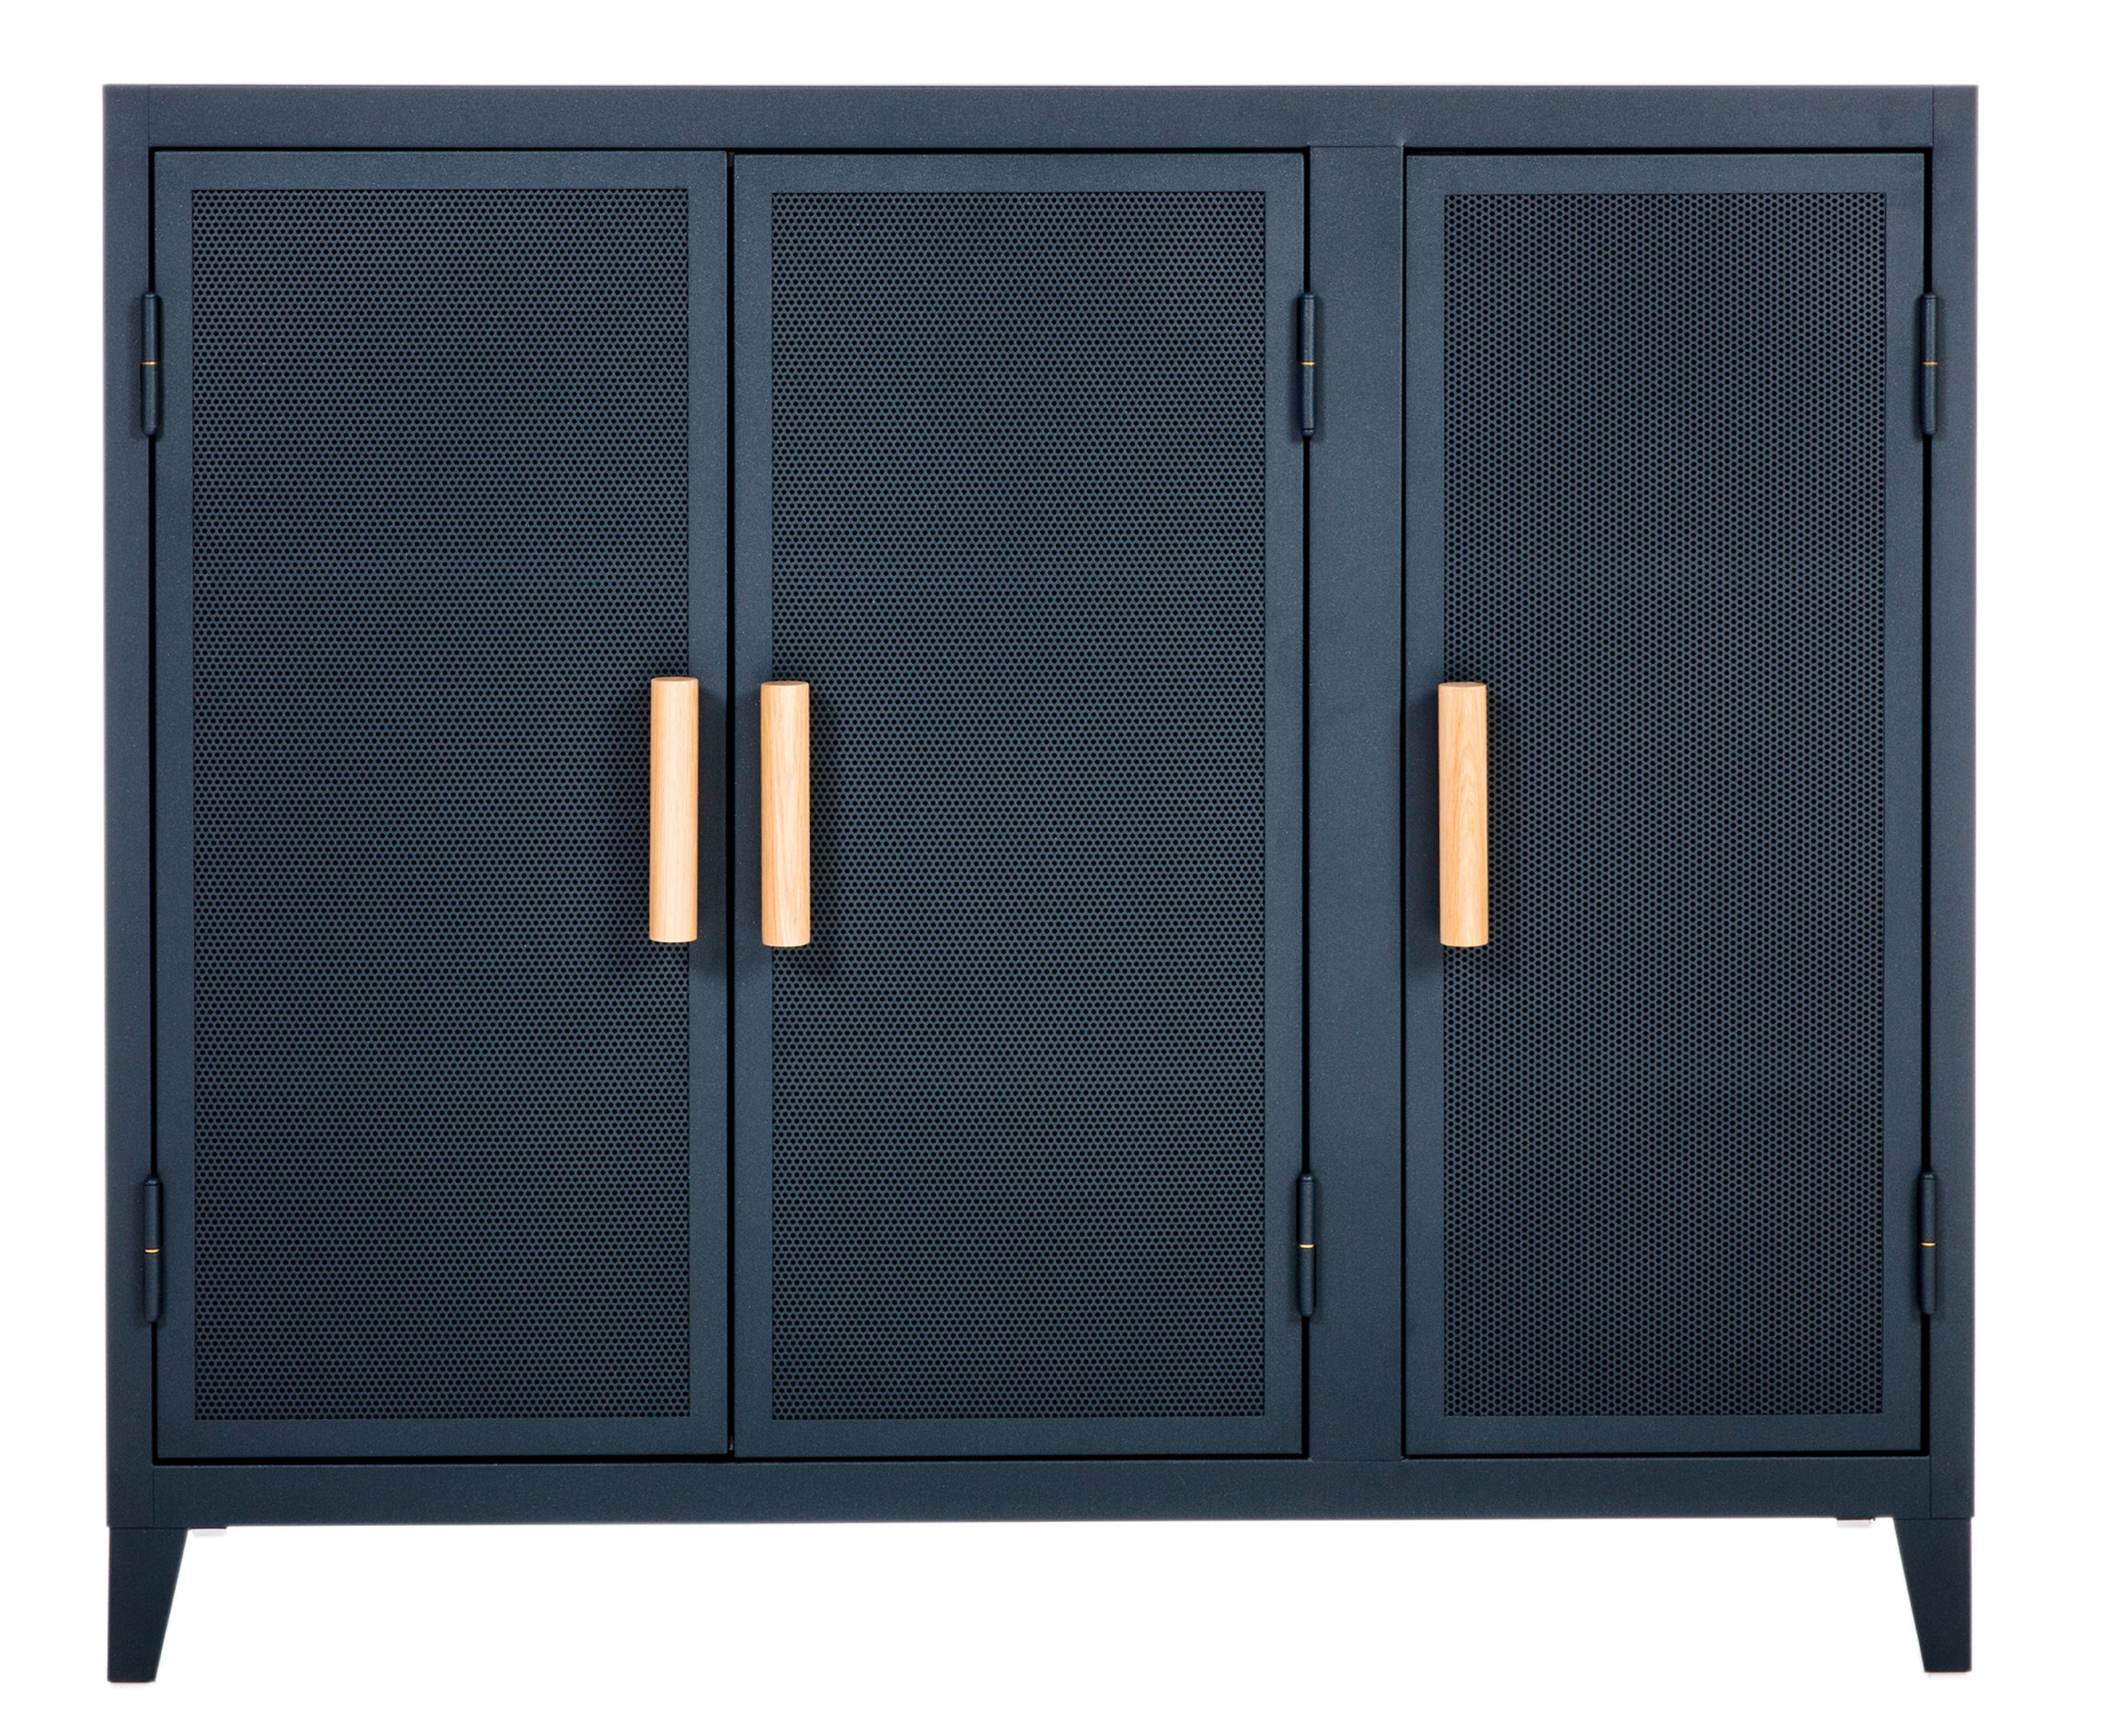 Furniture - Shelves & Storage Furniture - Vestiaire bas Storage - 3 doors / Perforated steel & wood by Tolix - Night blue / Oak handles - Lacquered recycled steel, Solid oak